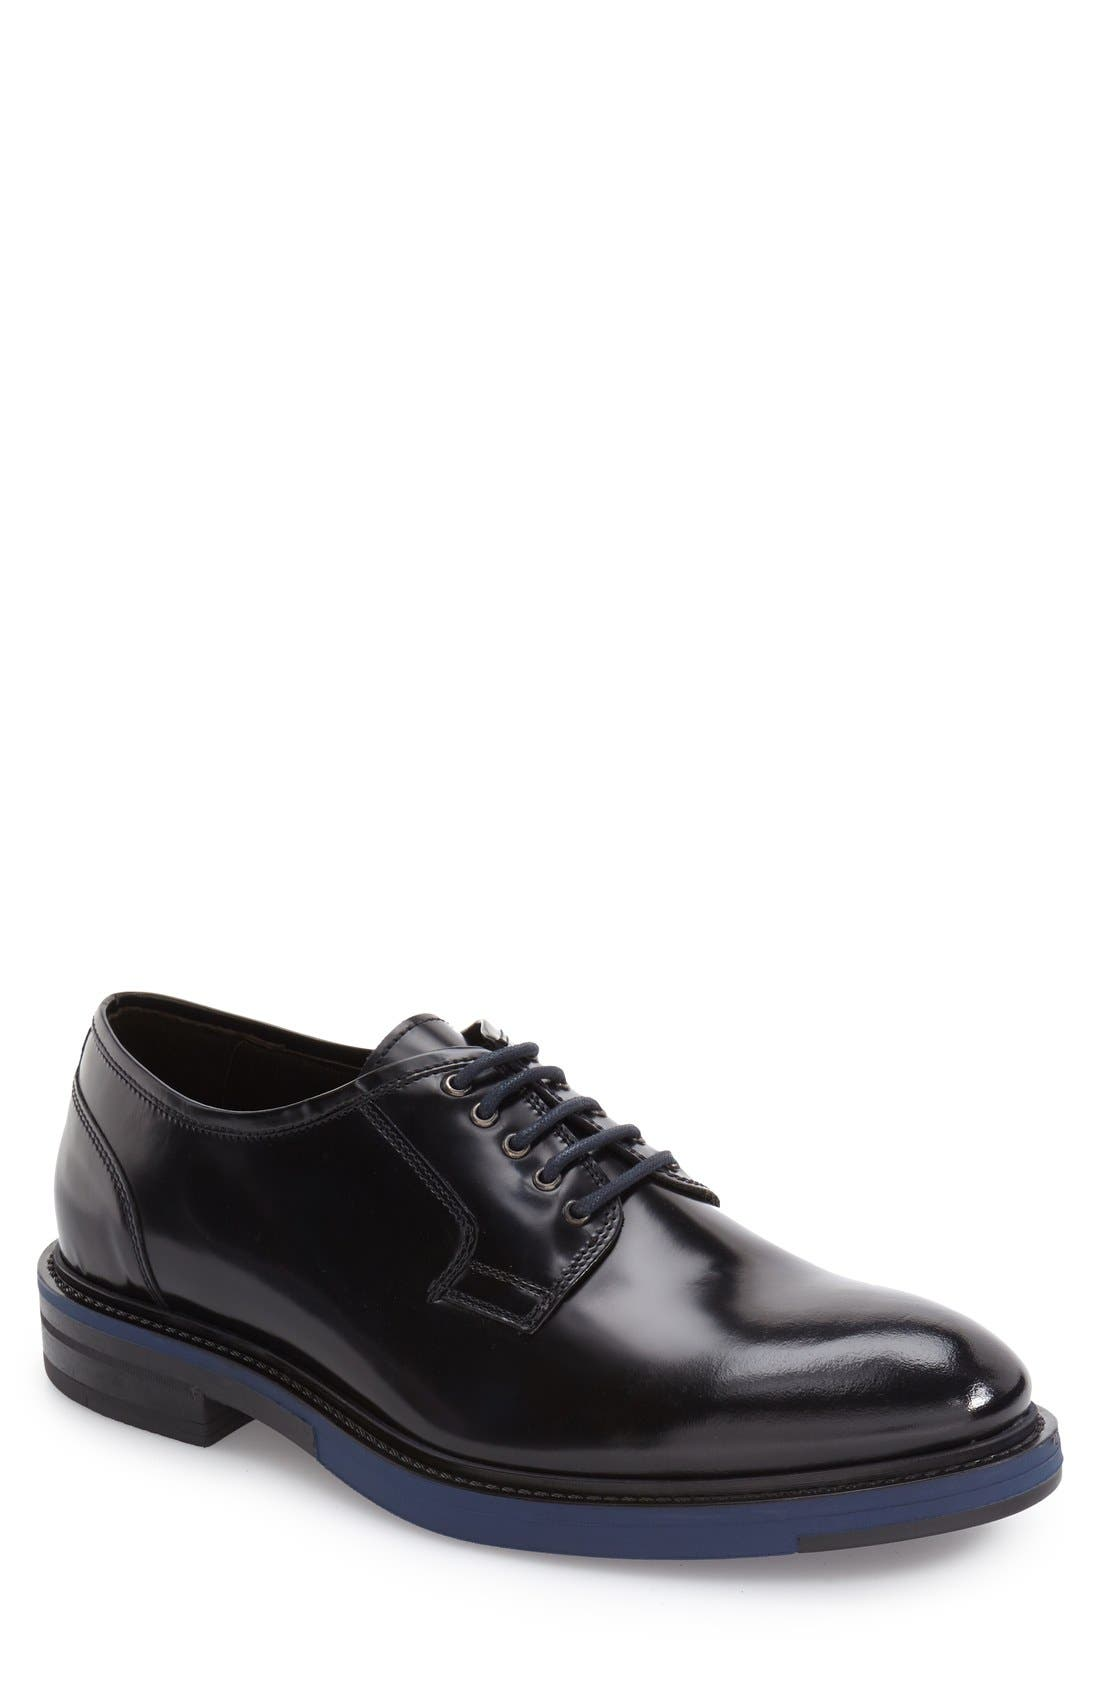 Main Image - Kenneth Cole New York Hi Five Plain Toe Derby (Men)